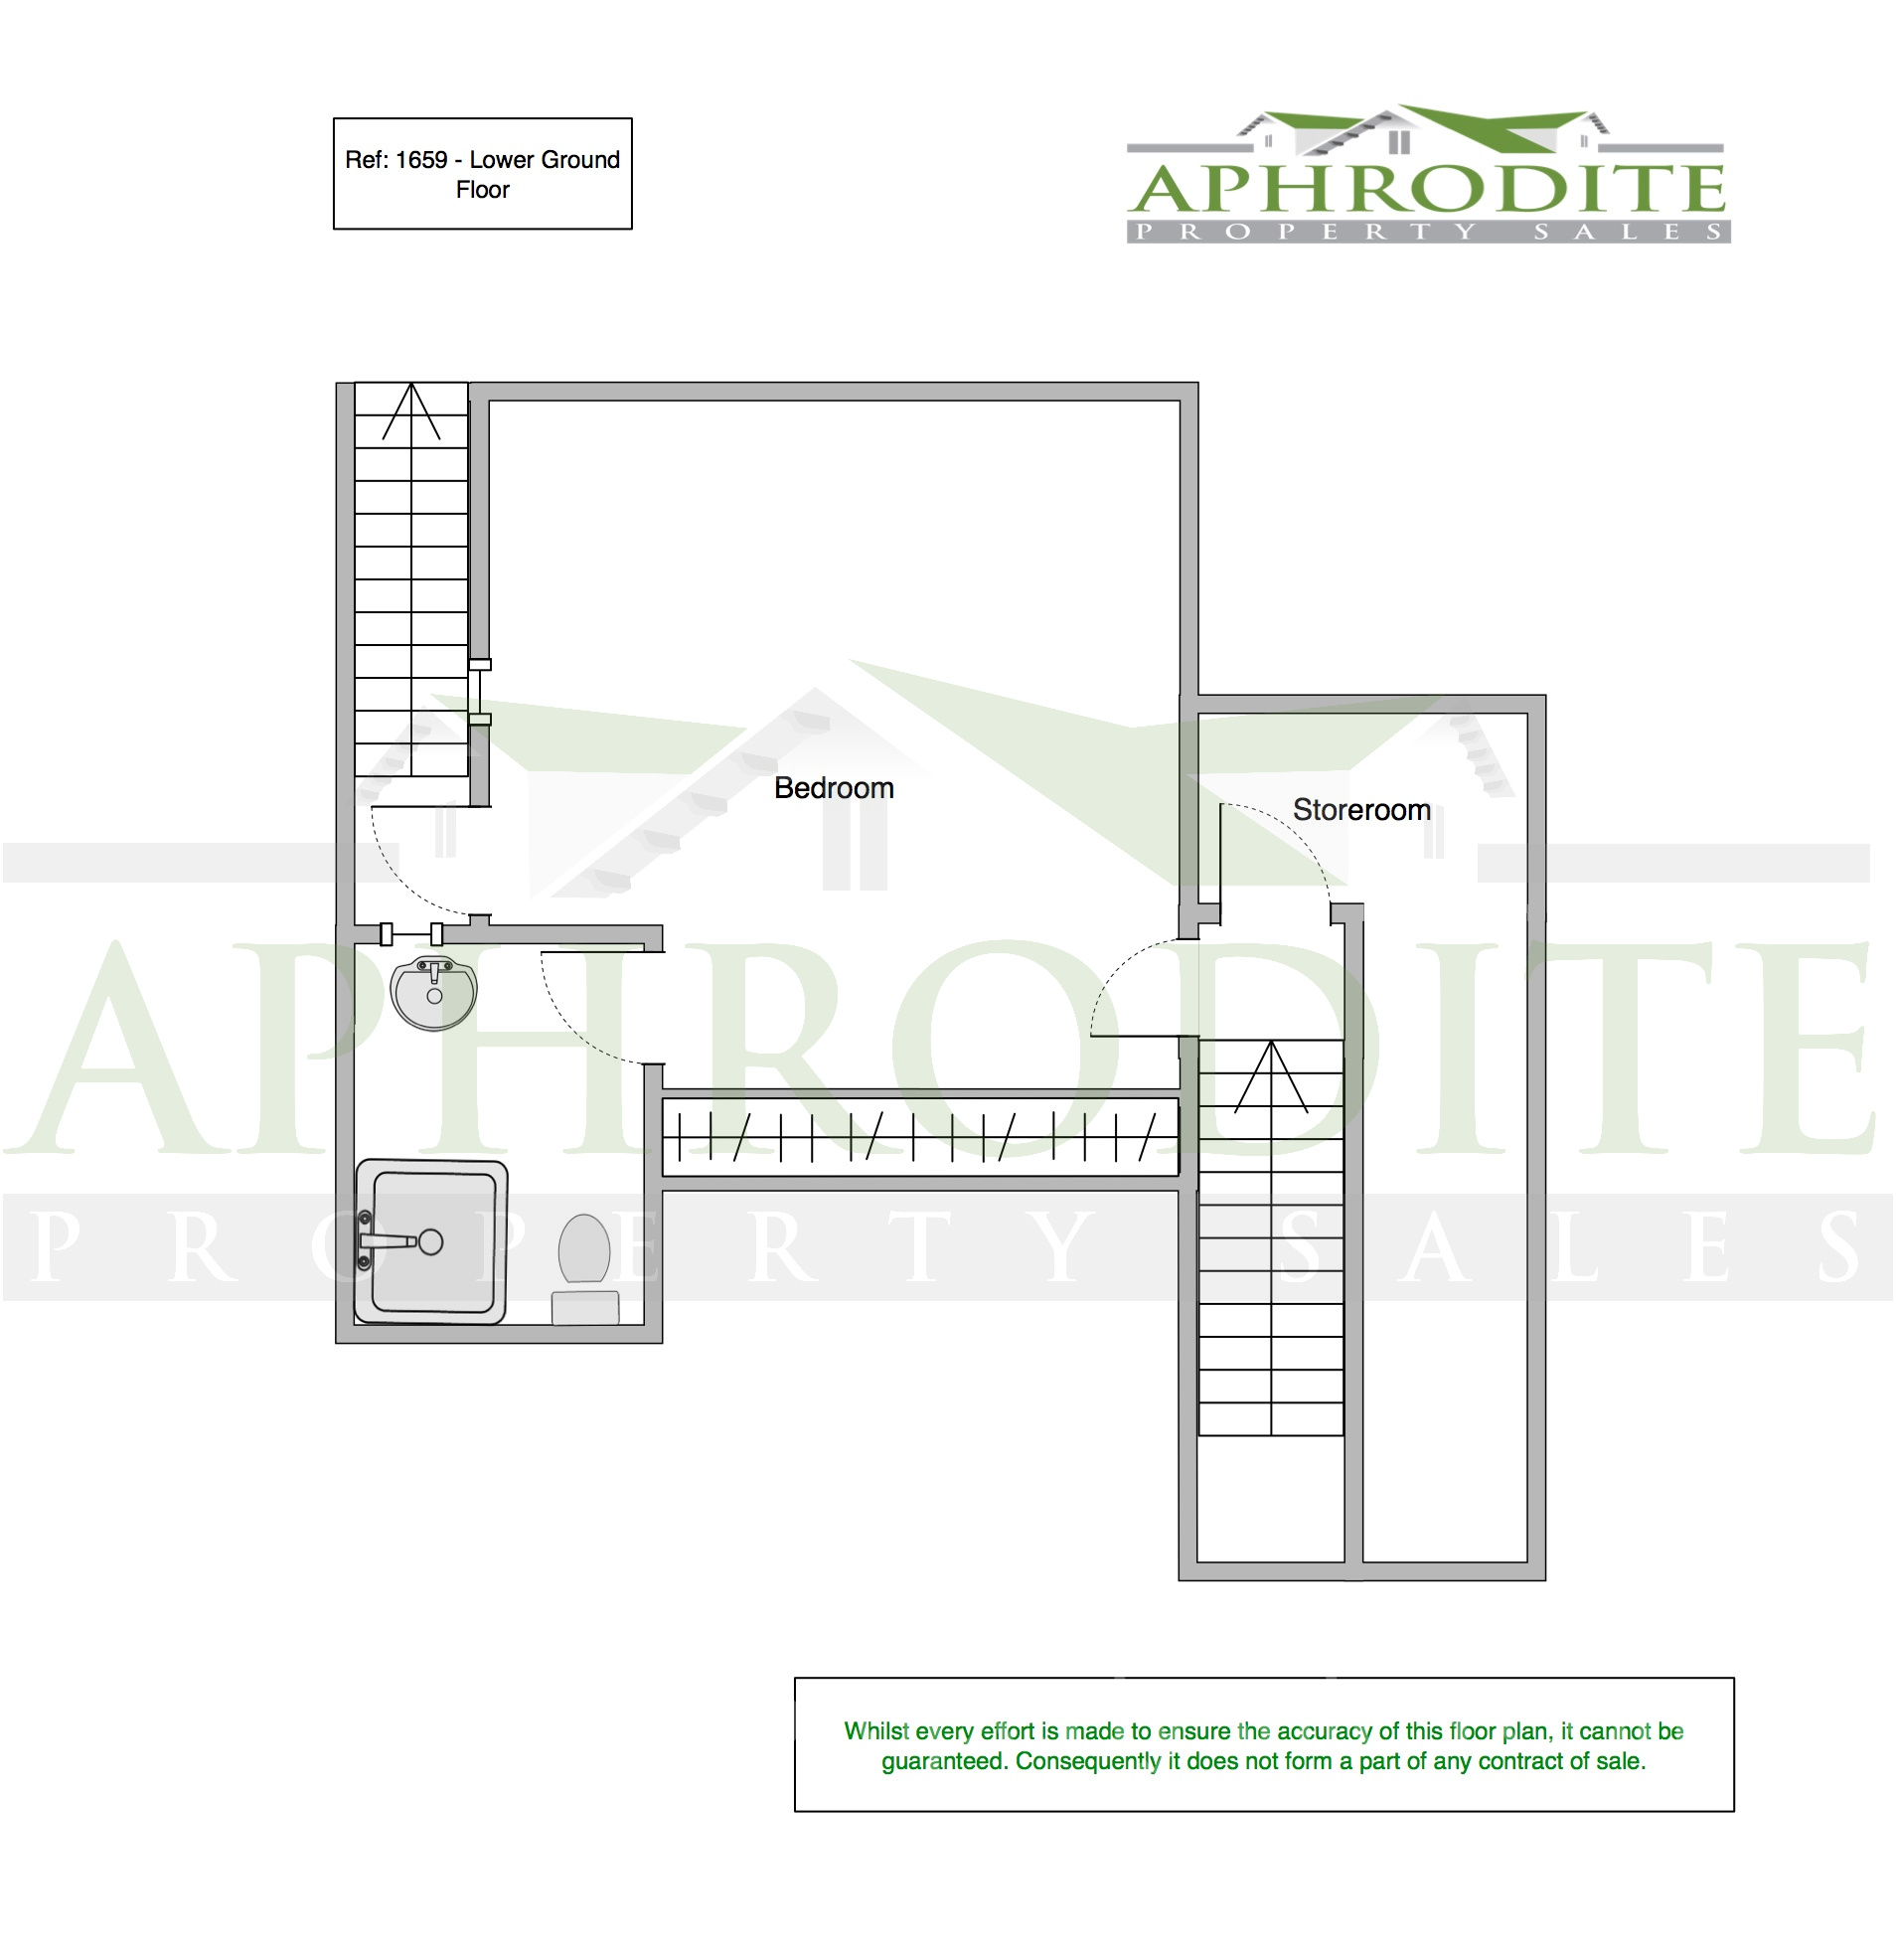 1659 - 3 Bedroom Villa - Aphrodite Hills floorplan 3